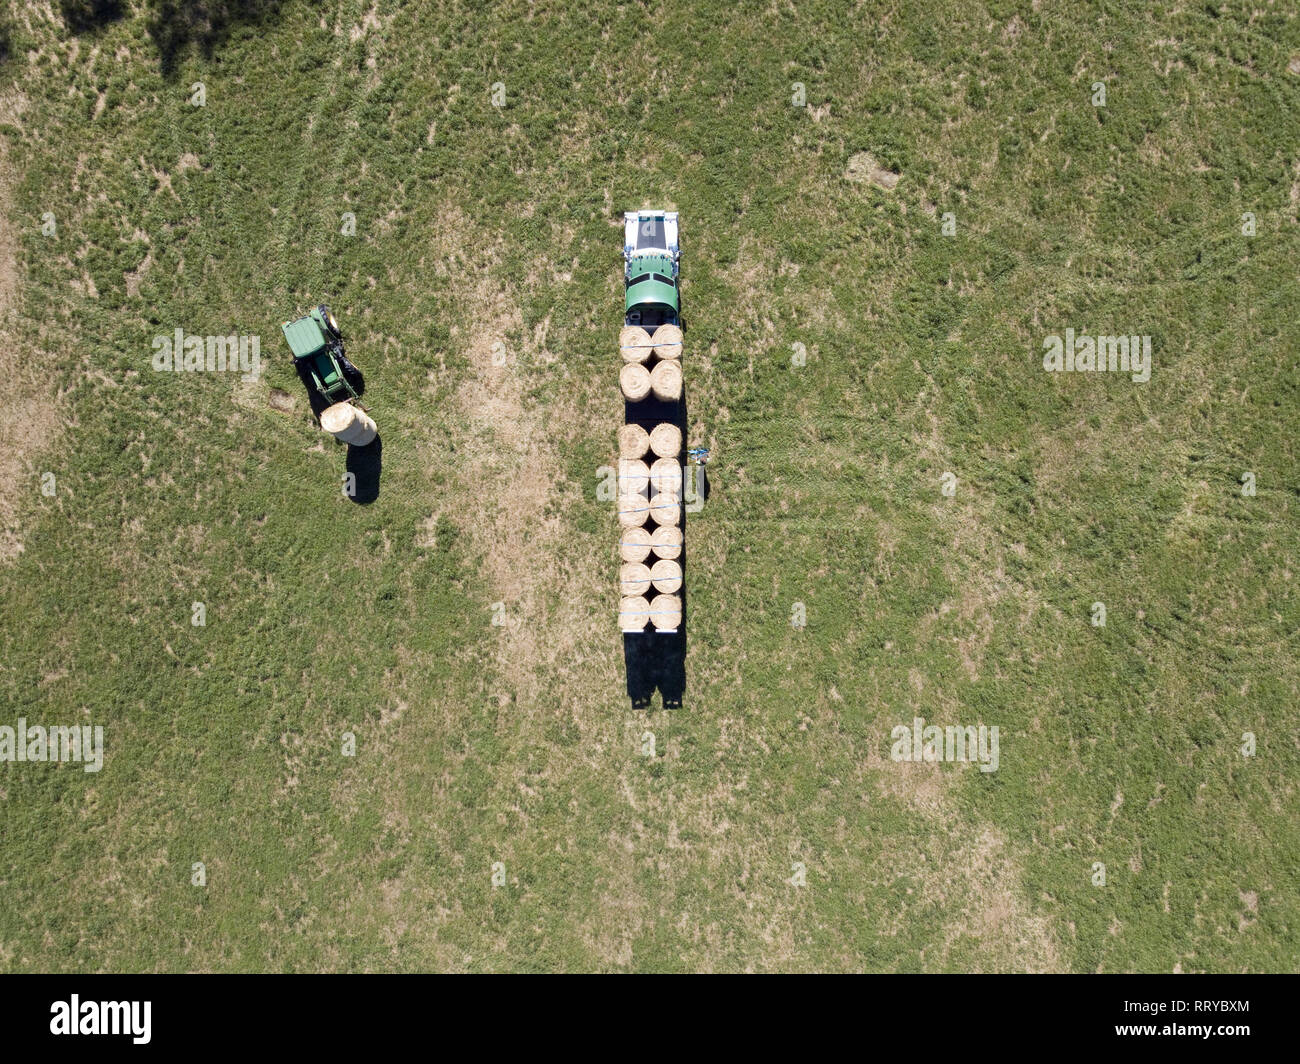 Aerial view Australian agriculture with tractor loading hay bales onto truck and semi trailer in a green paddock. Drone photography from above. - Stock Image